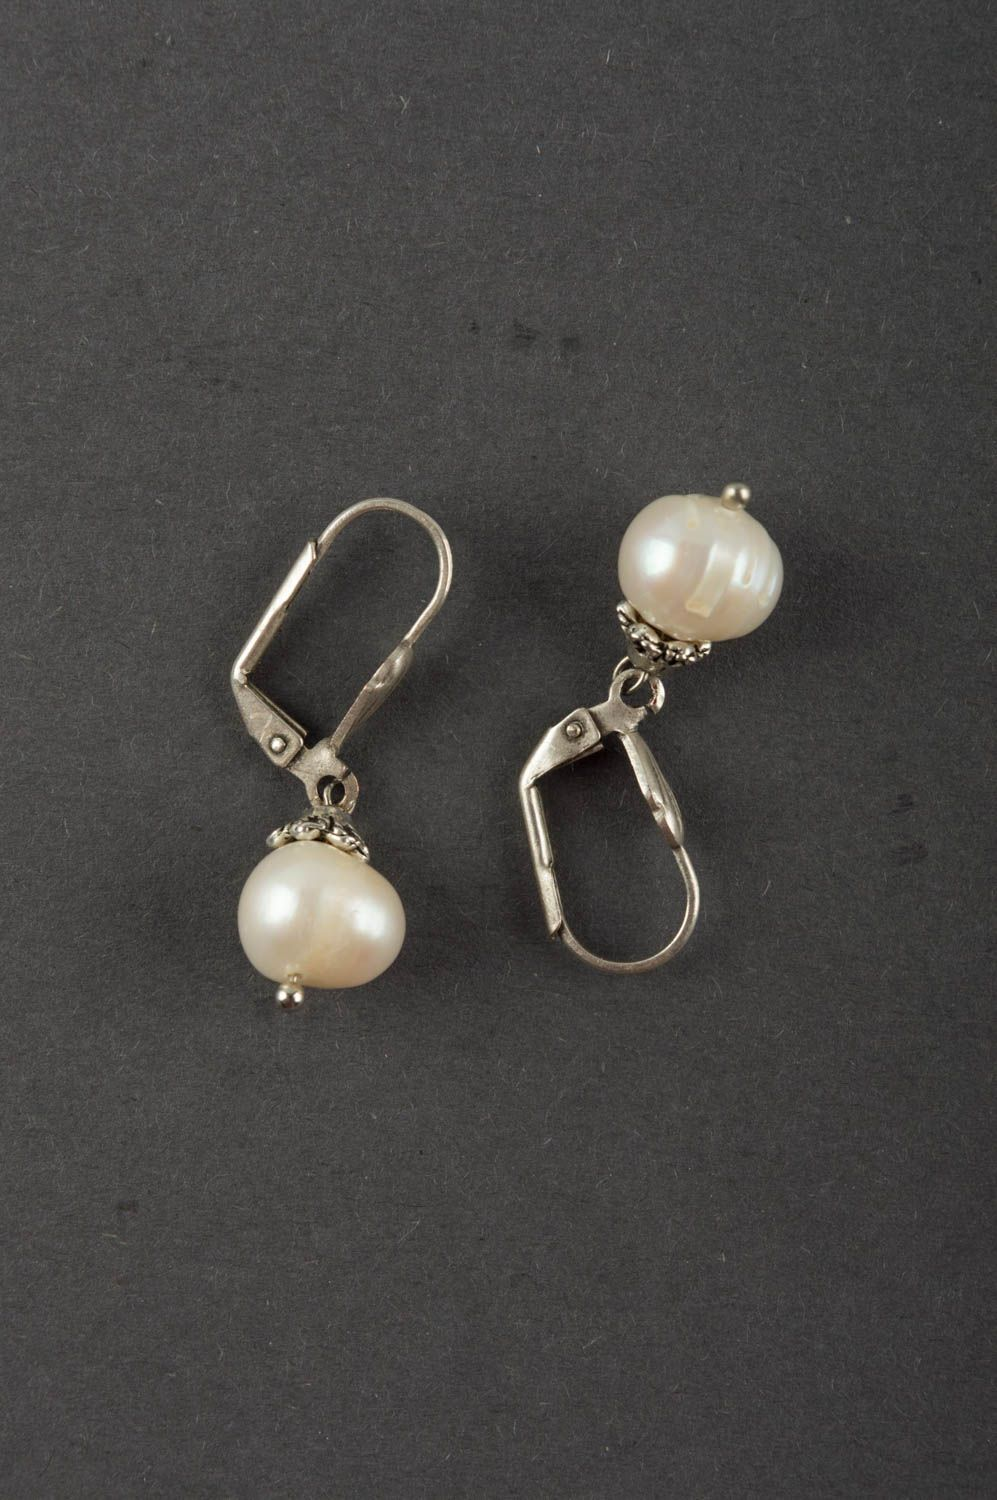 drop earrings Elegant cute designer tender handmade earrings made of pearls and brass - MADEheart.com